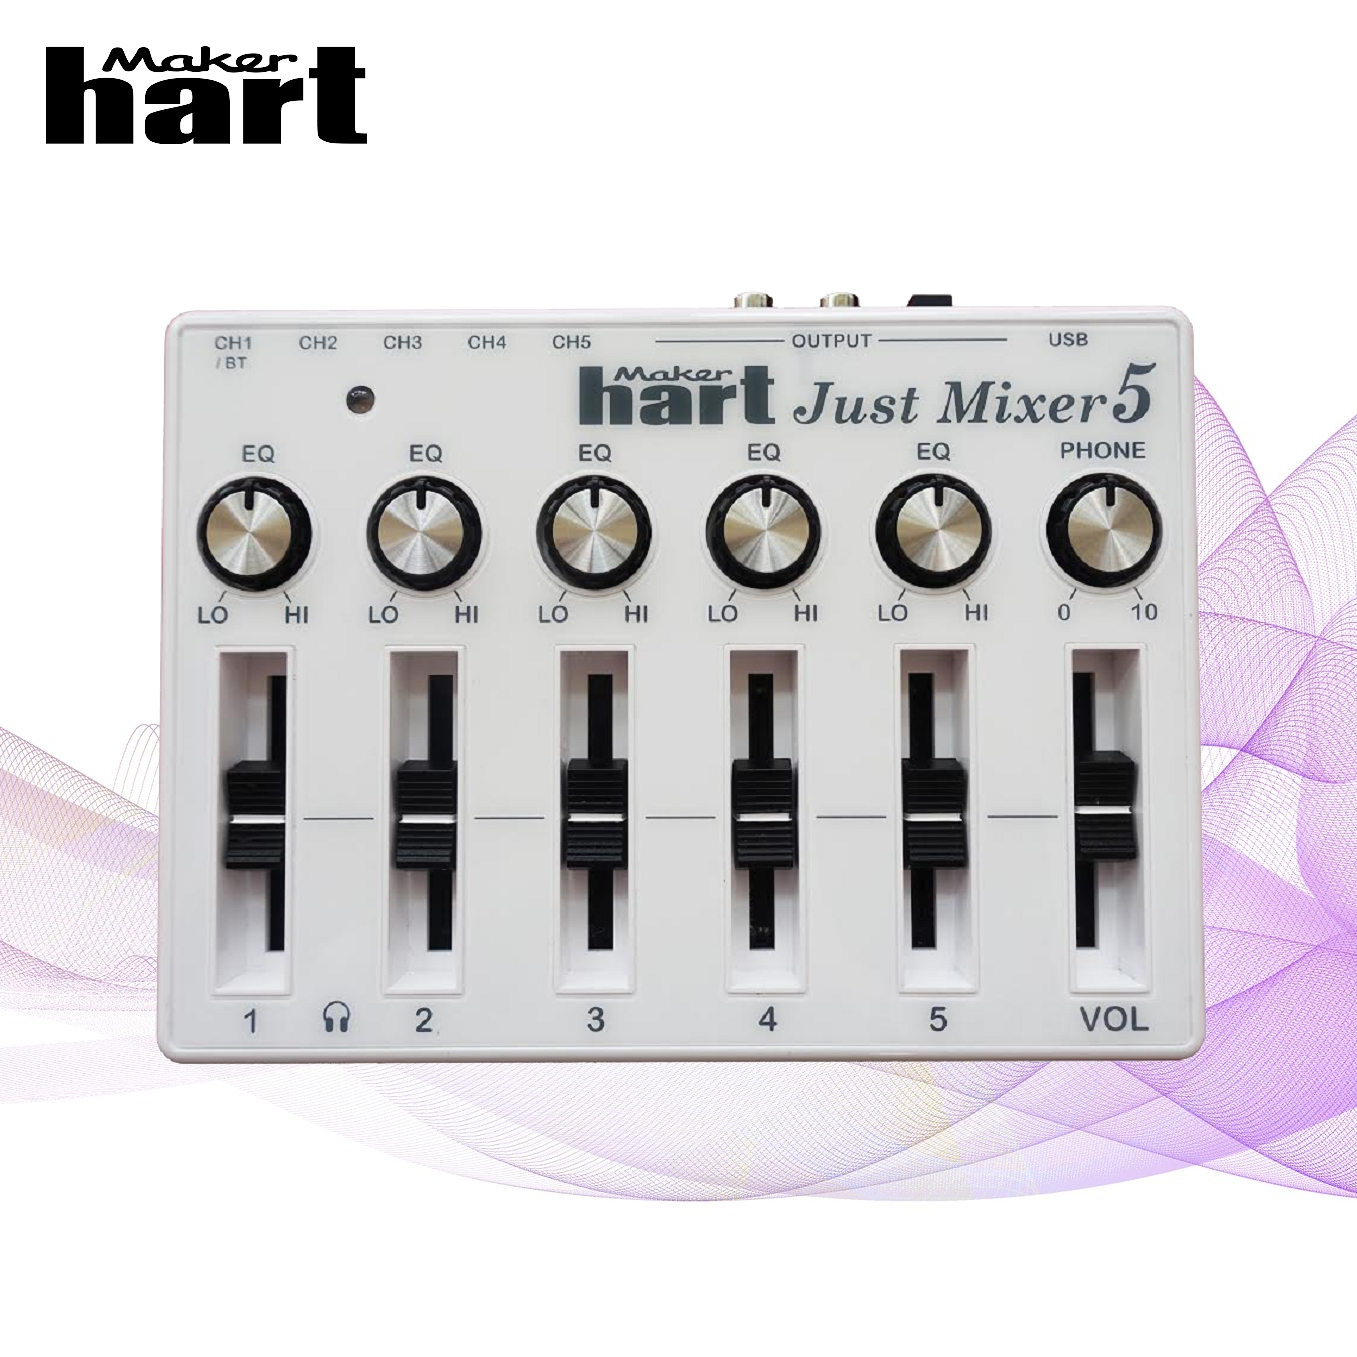 120V mini mic mixer audio equipment mute